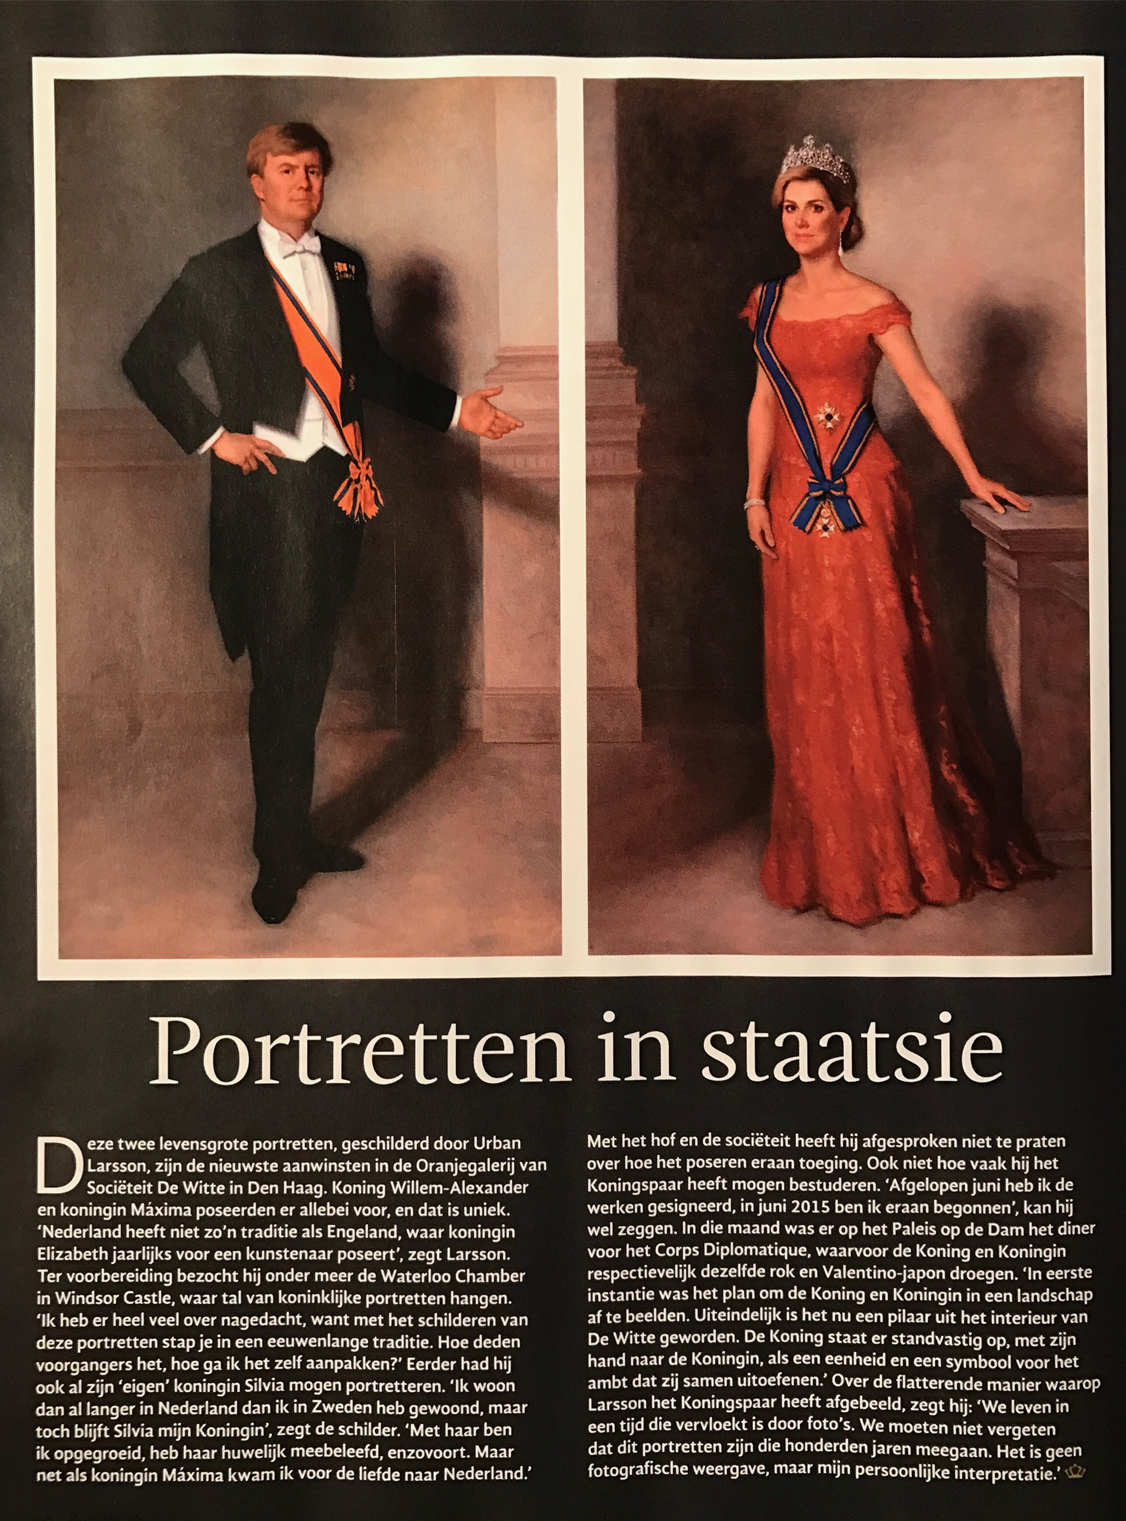 Media attention for the state portraits of Willem-Alexander and Maxima, which are to be hung in the De Witte Society in The Hague.